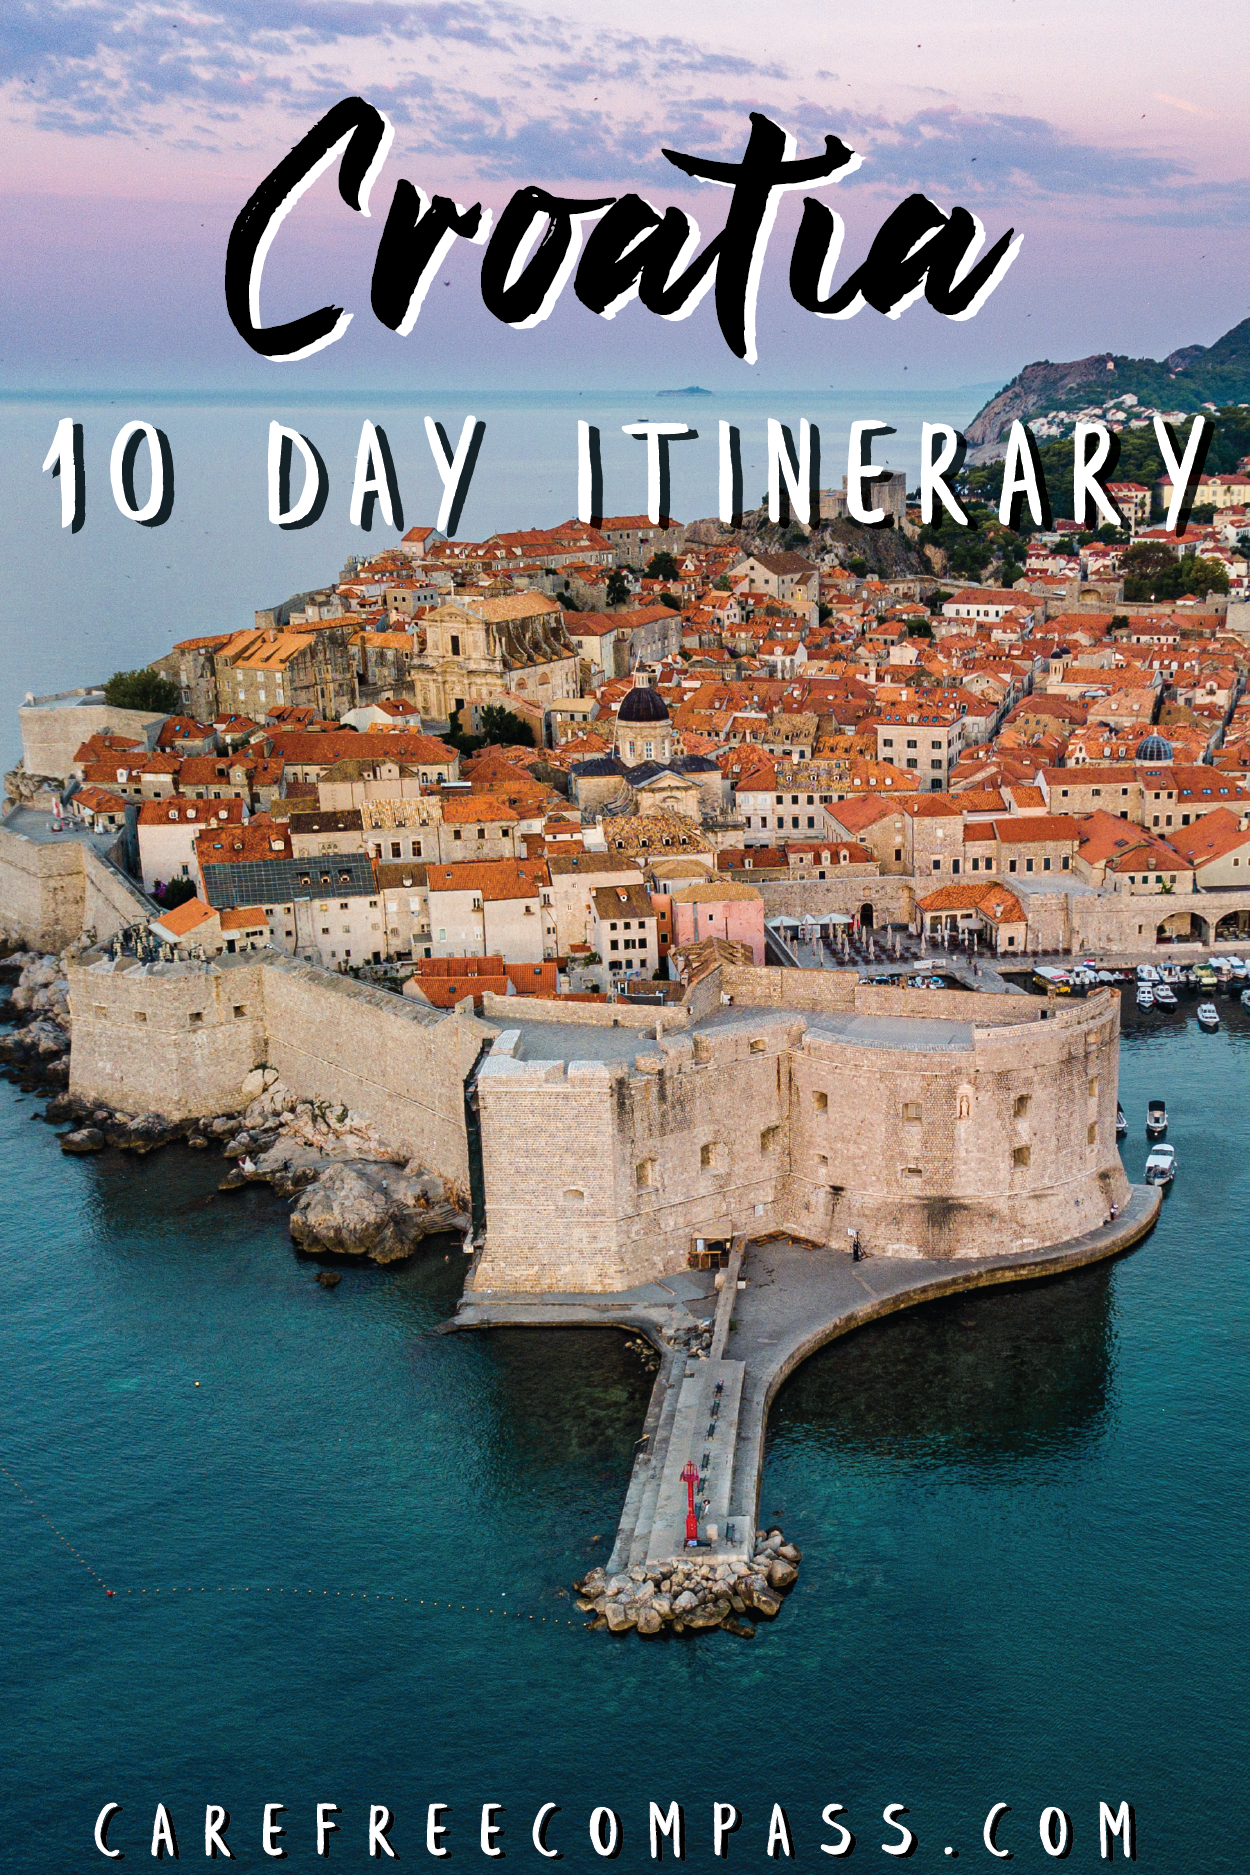 How To Take The Perfect 10 Day Croatia Road Trip Carefree Compass In 2020 Trip Travel Destinations European Road Trip Fun